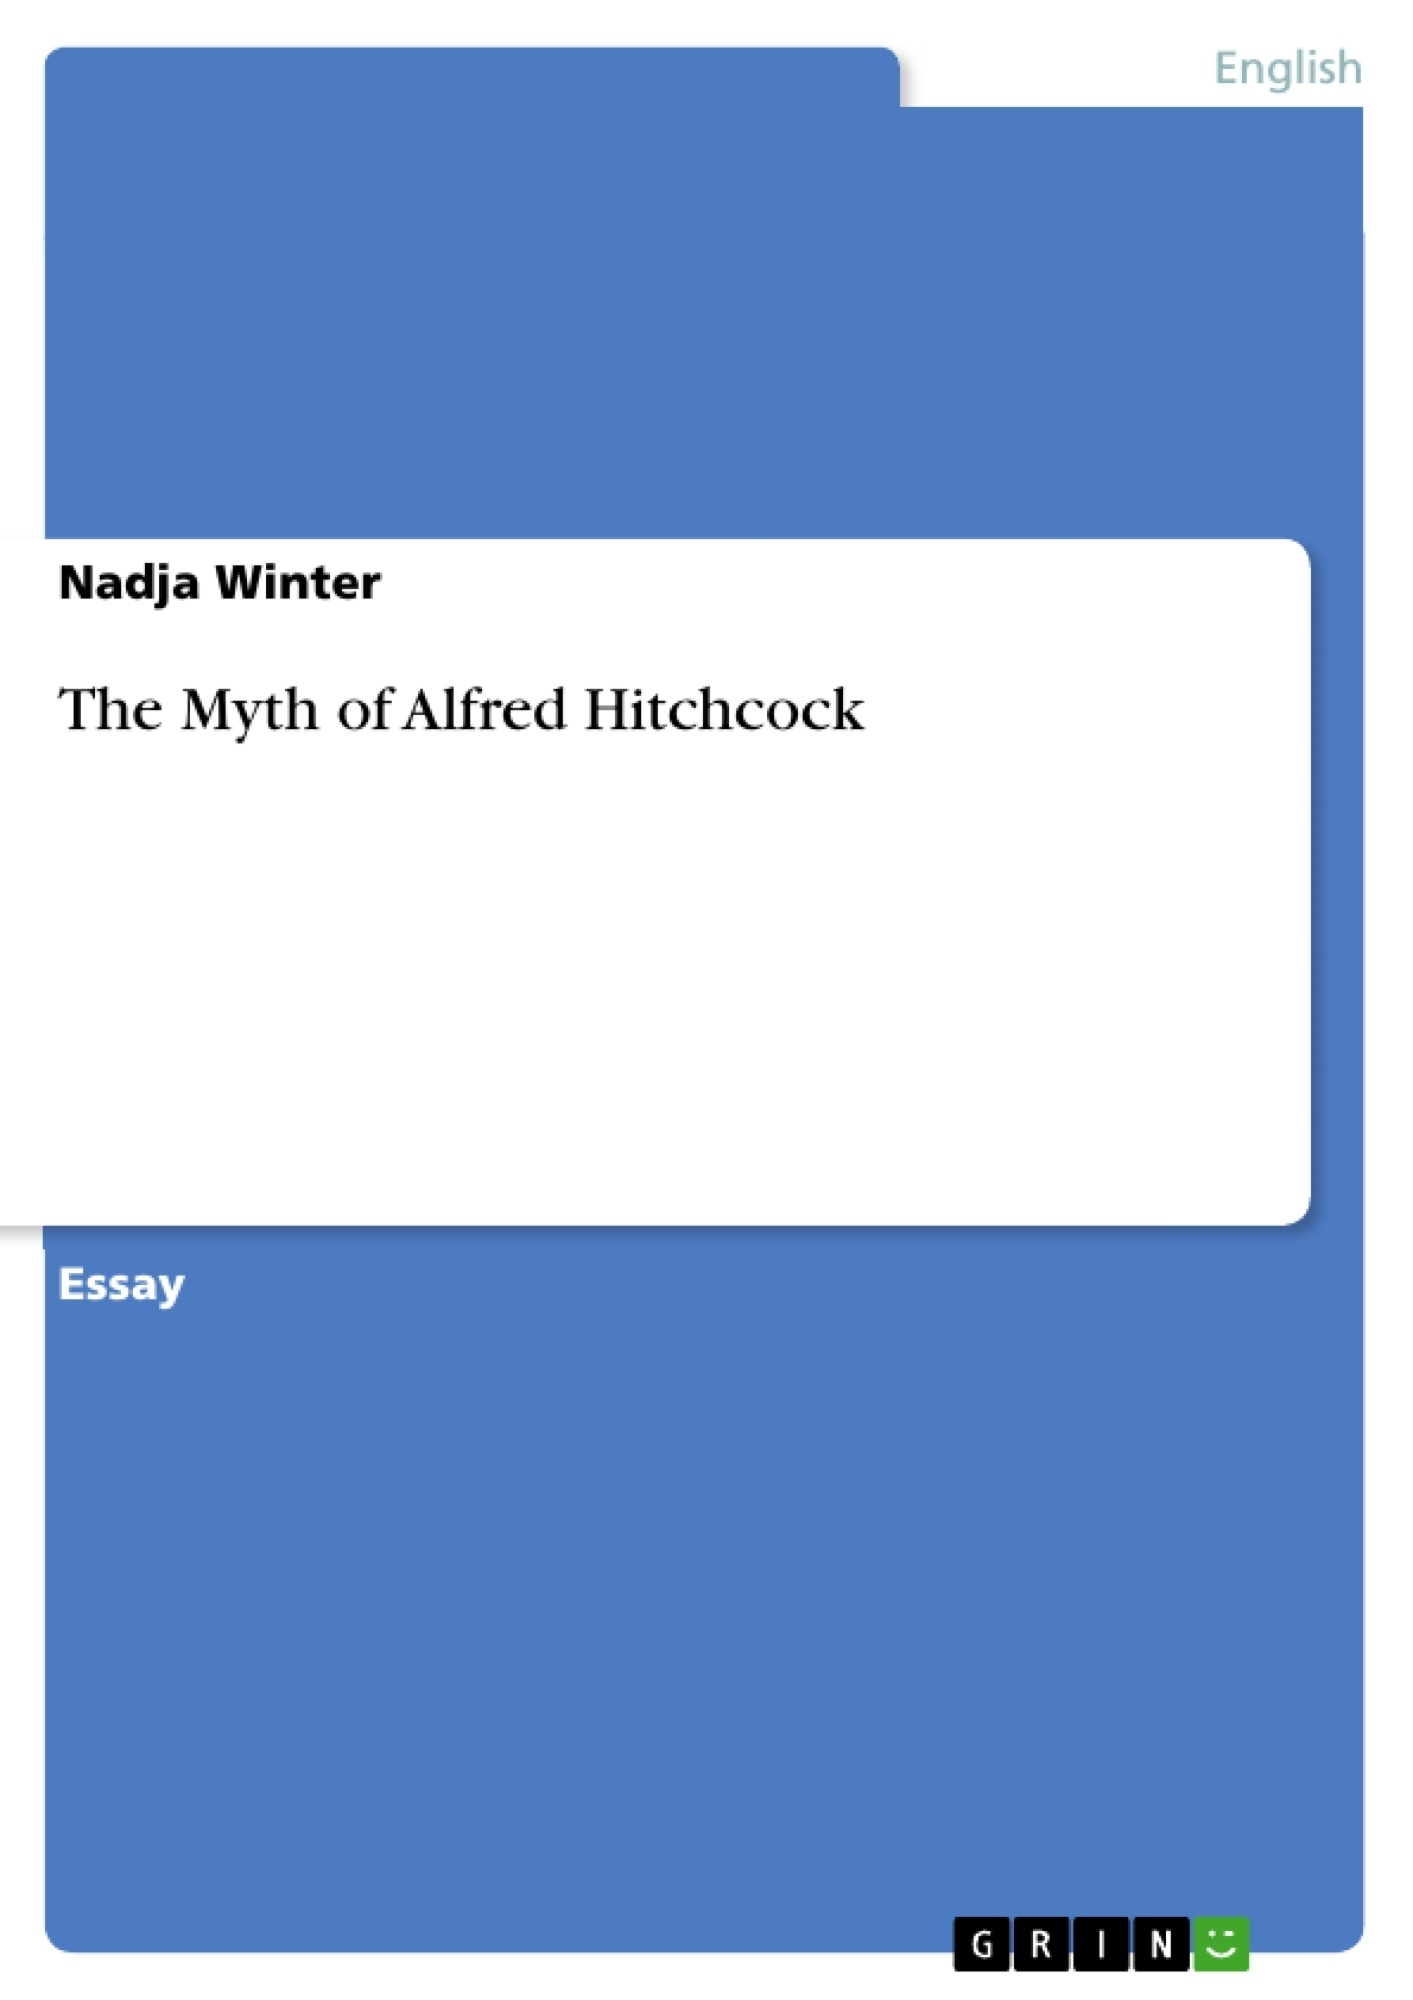 Title: The Myth of Alfred Hitchcock